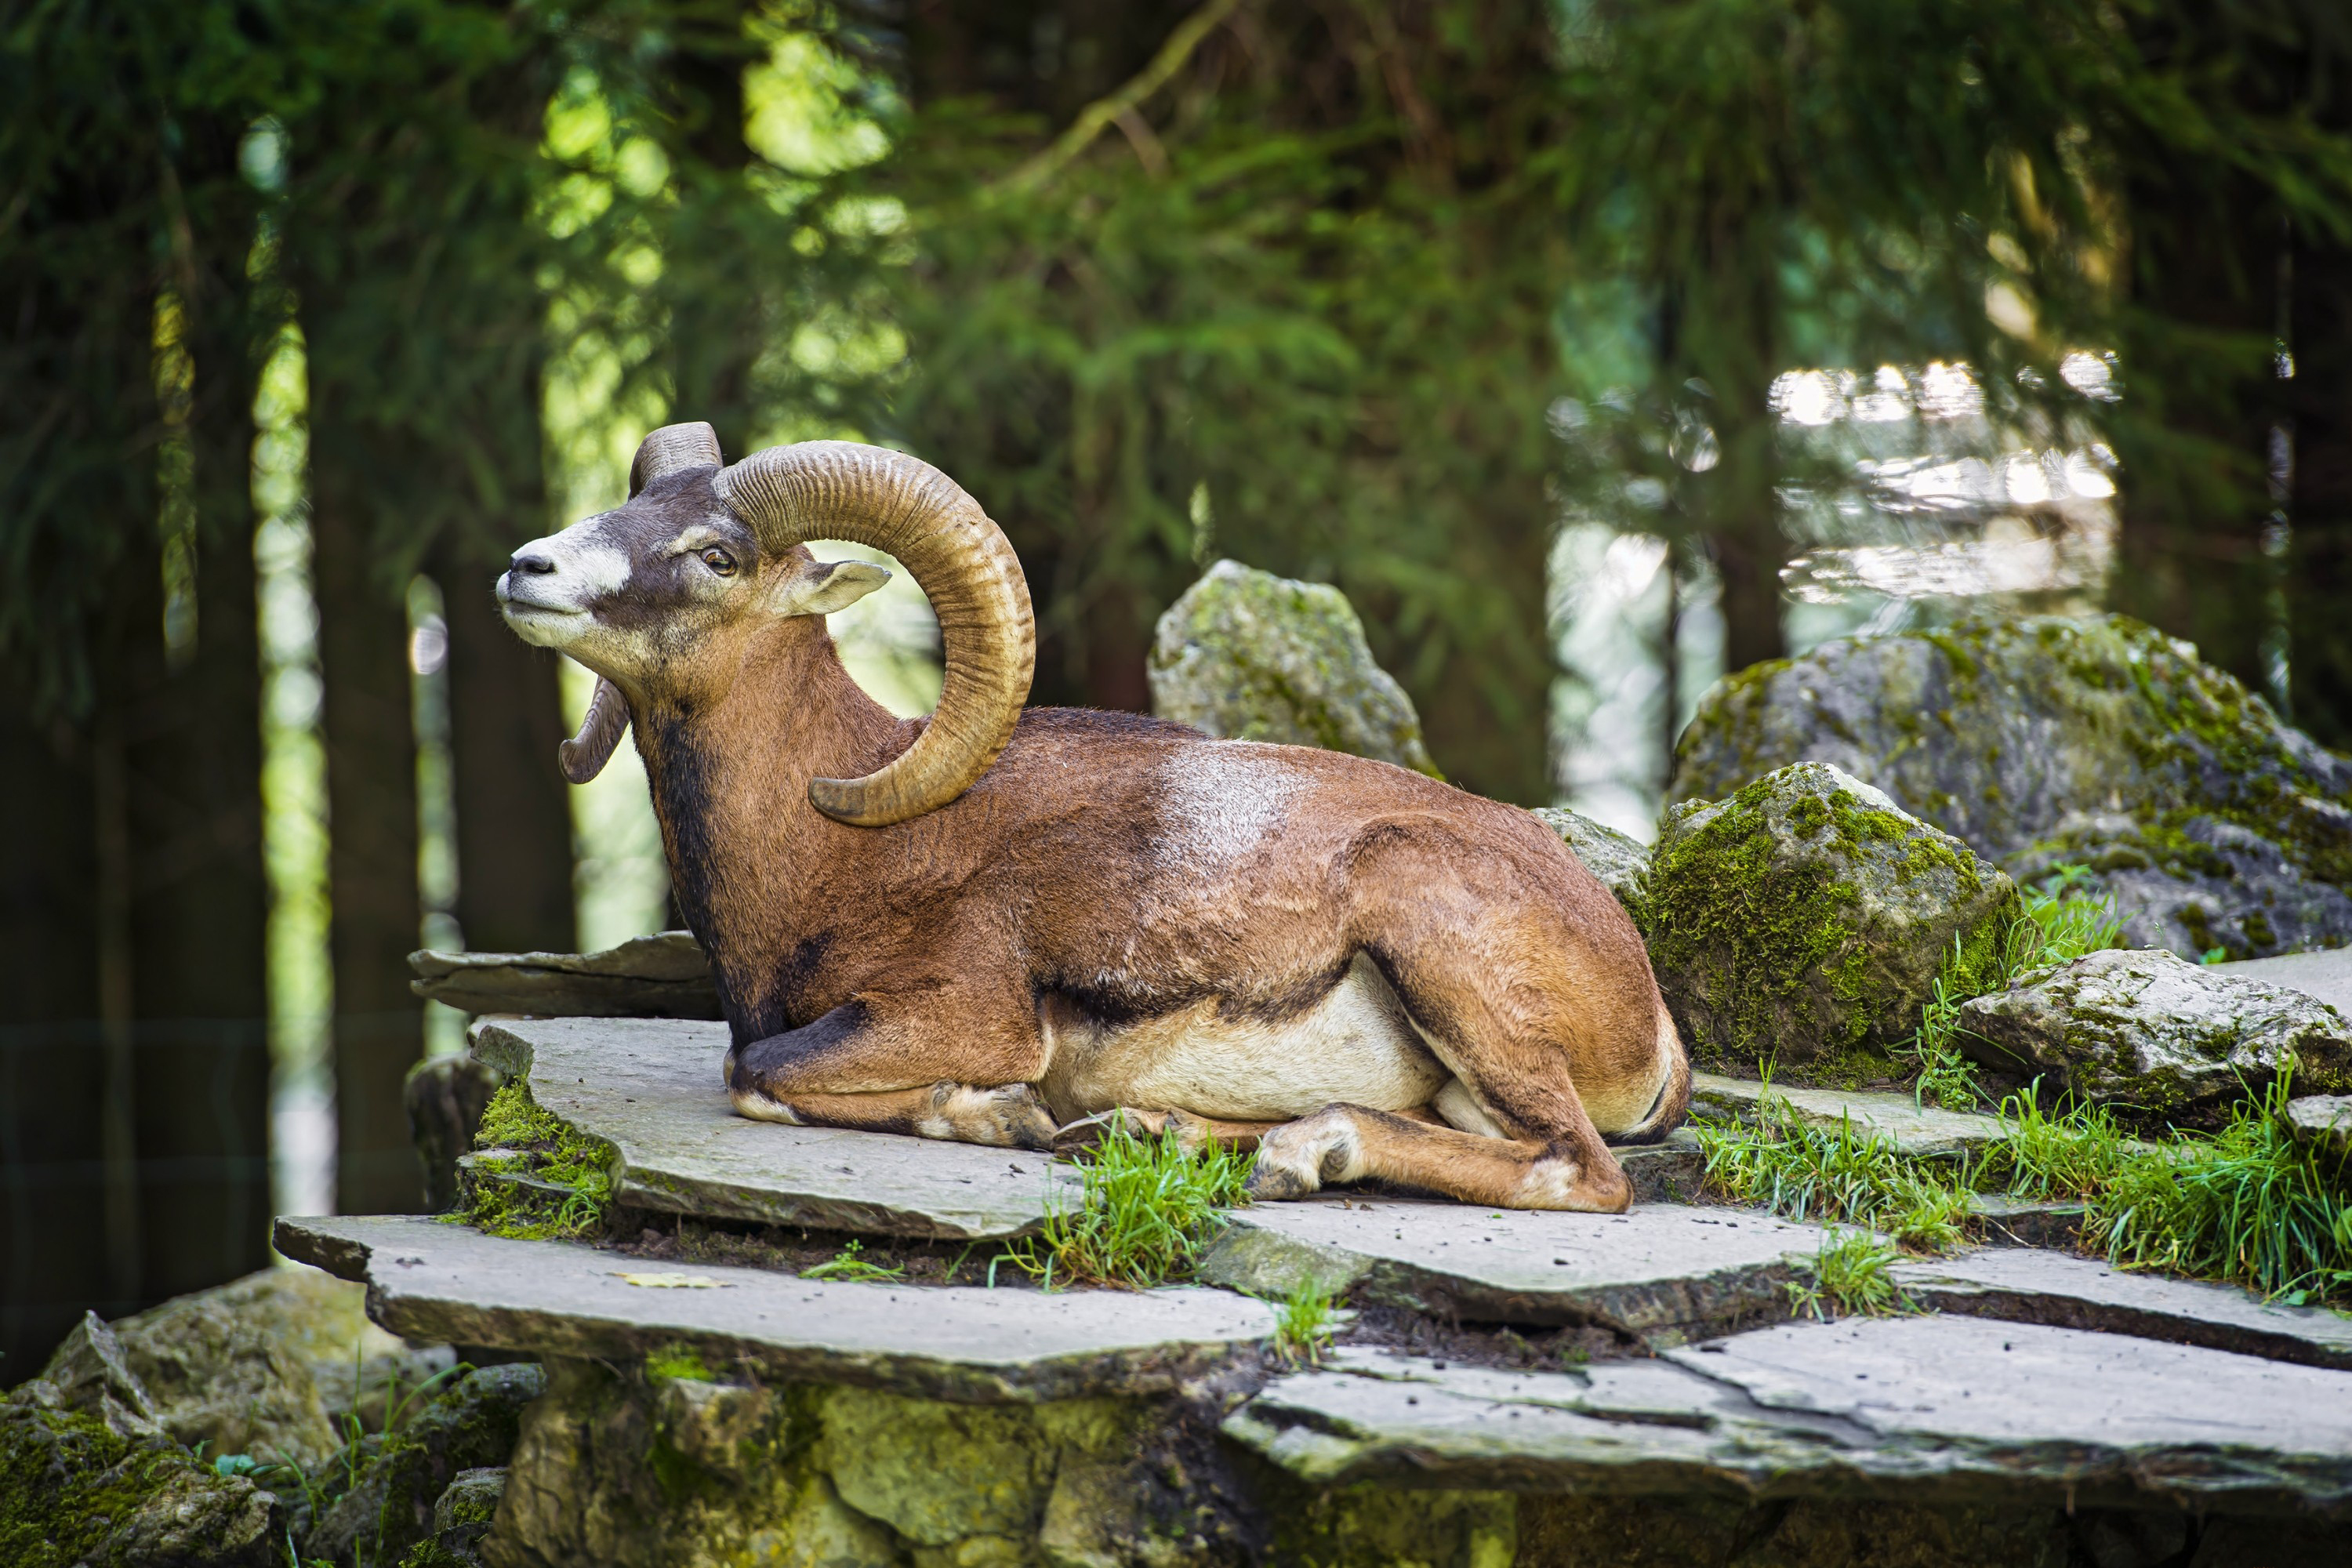 Big Horn Sheep HD Wallpaper Background Image 3000x2000 ID 3000x2000